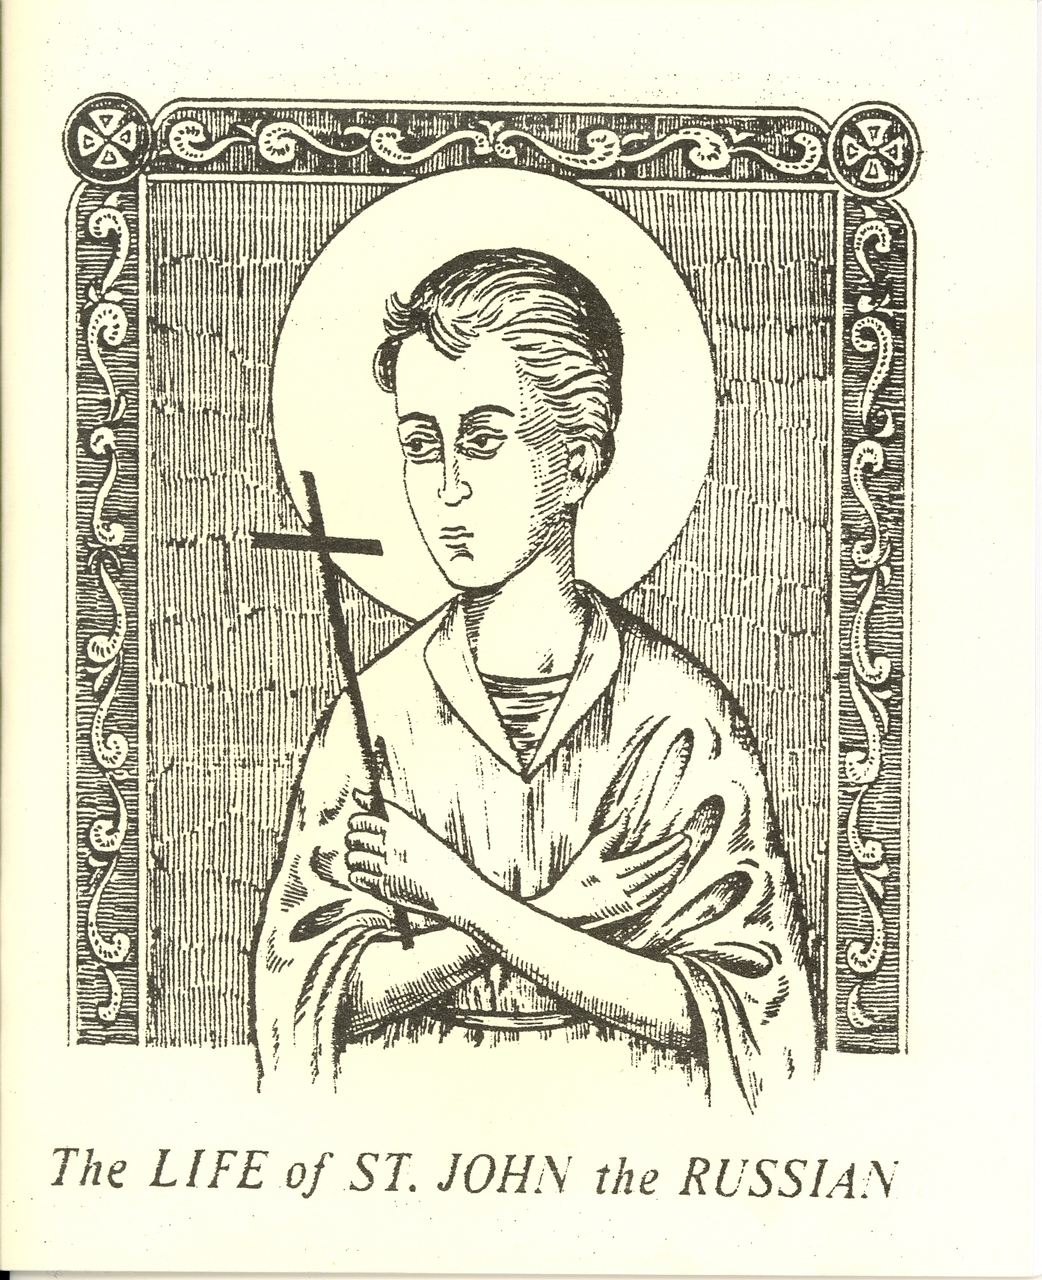 The Life of St John the Russian